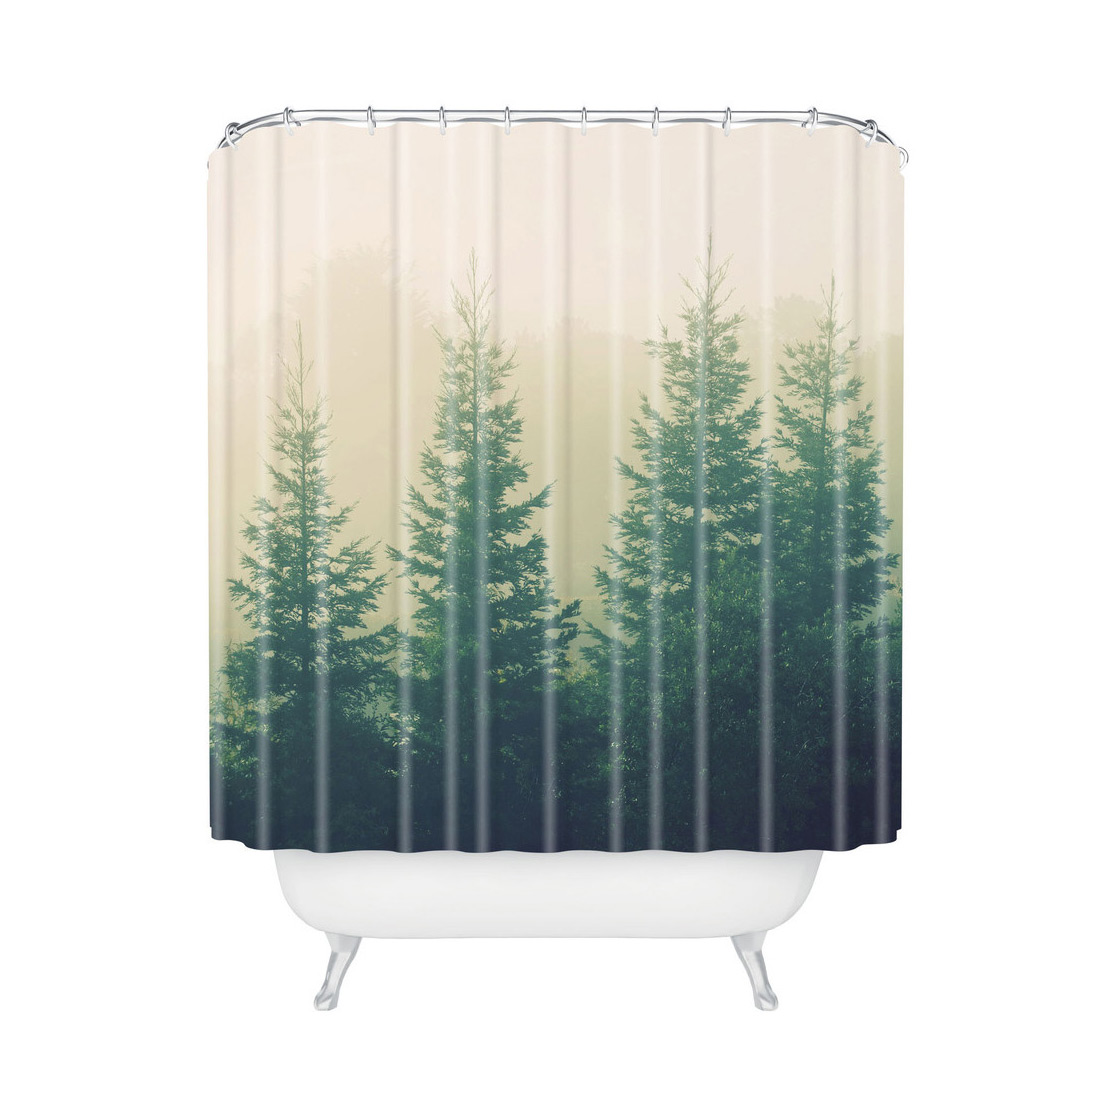 Fresh Green Nature Shower Curtain Design With Pine Tree Pattern On White Base Cloth